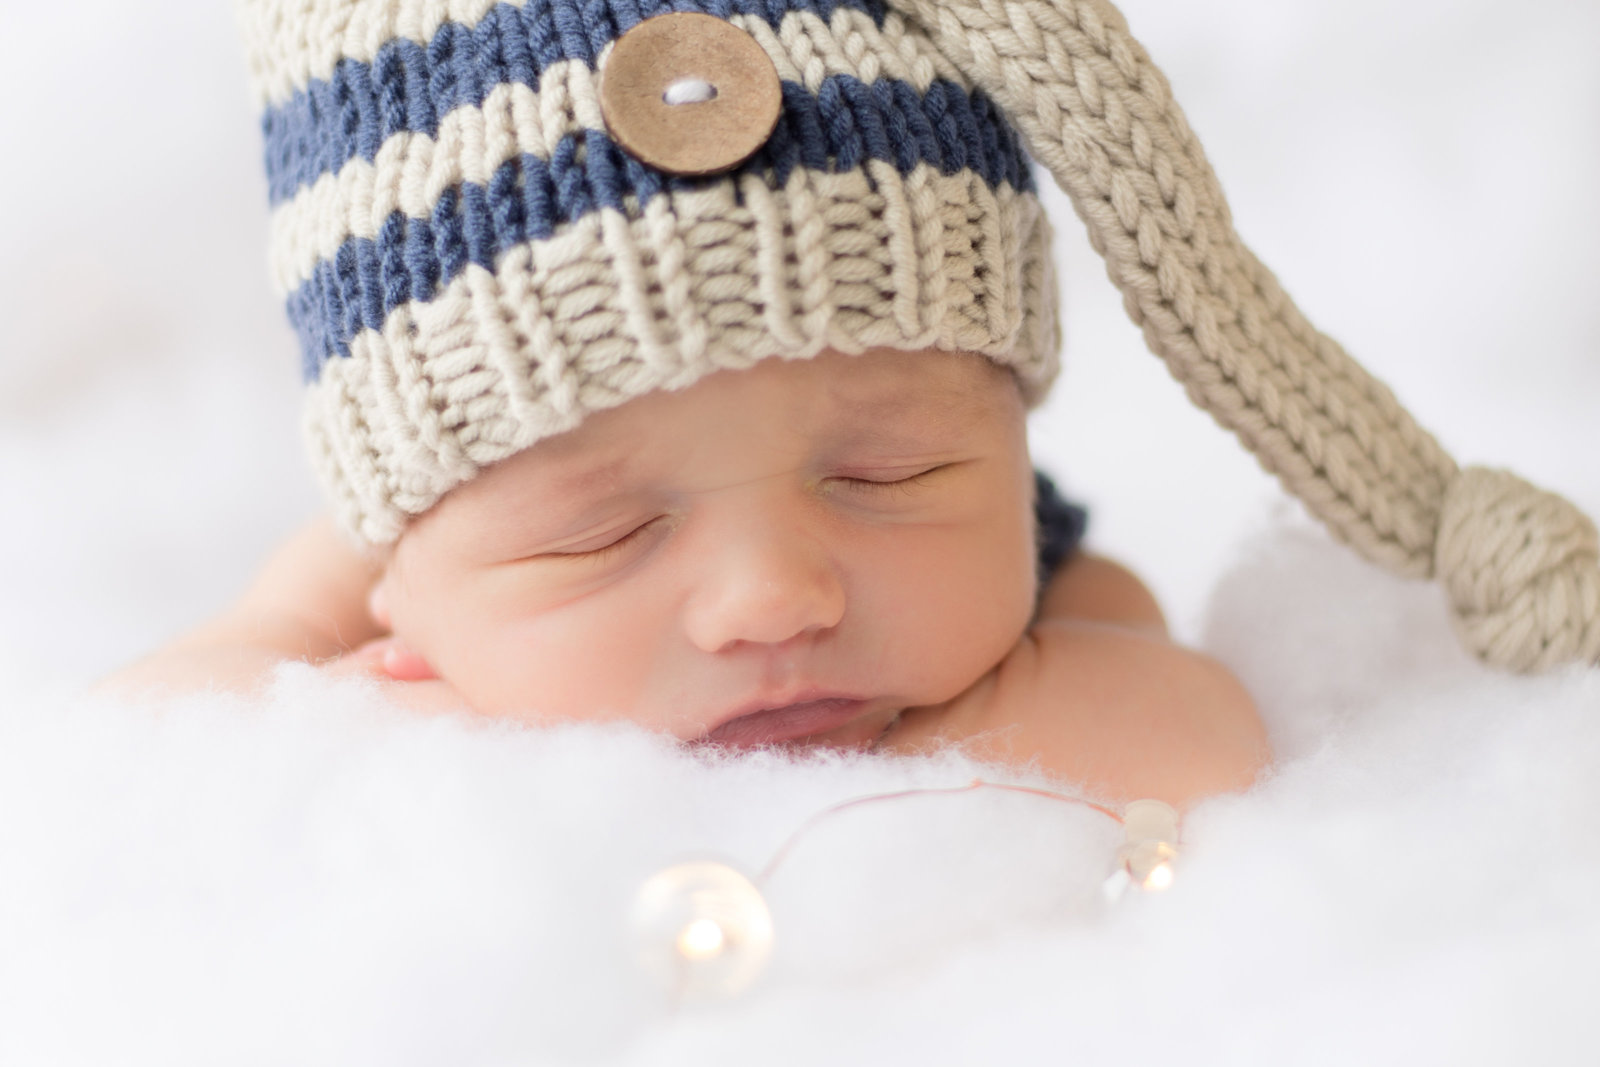 newborn baby boy wearing a striped sleep cap